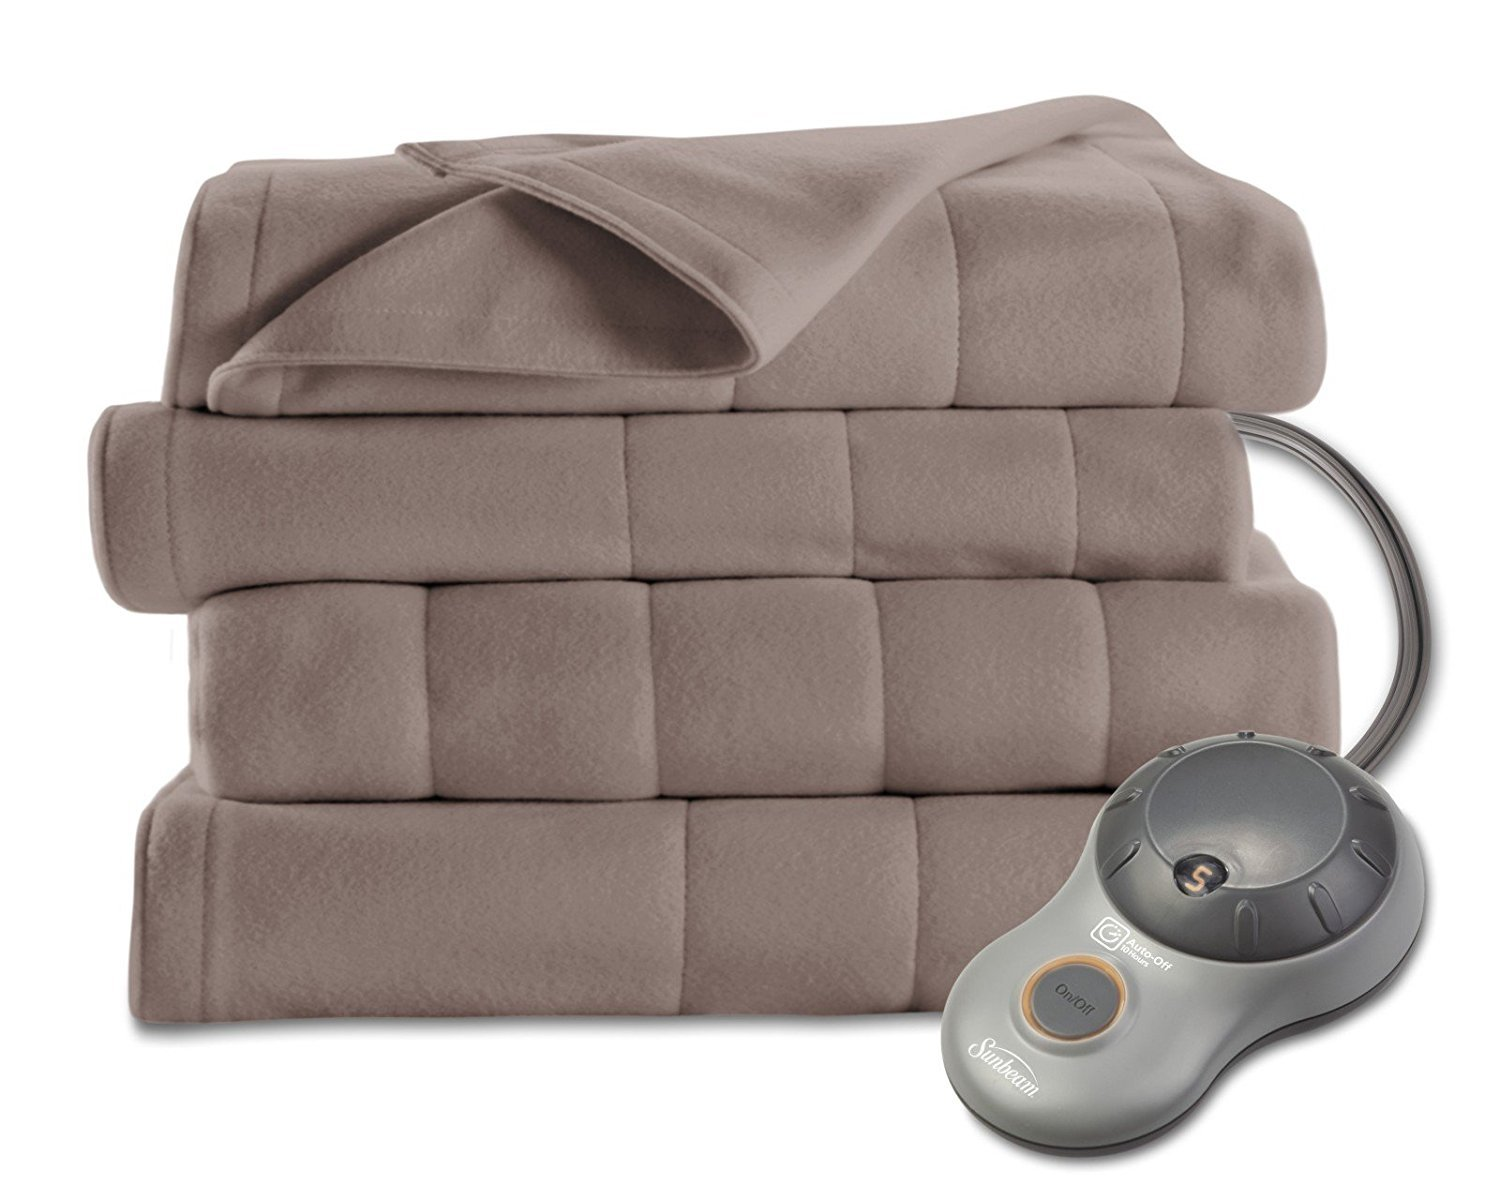 Sunbeam Quilted Fleece Heated Blanket, Queen, Mushroom, BSF9GQS-R772-13A00  | 0027045754170 - Buy new and used Homes, books and more | BIGWORDS.com